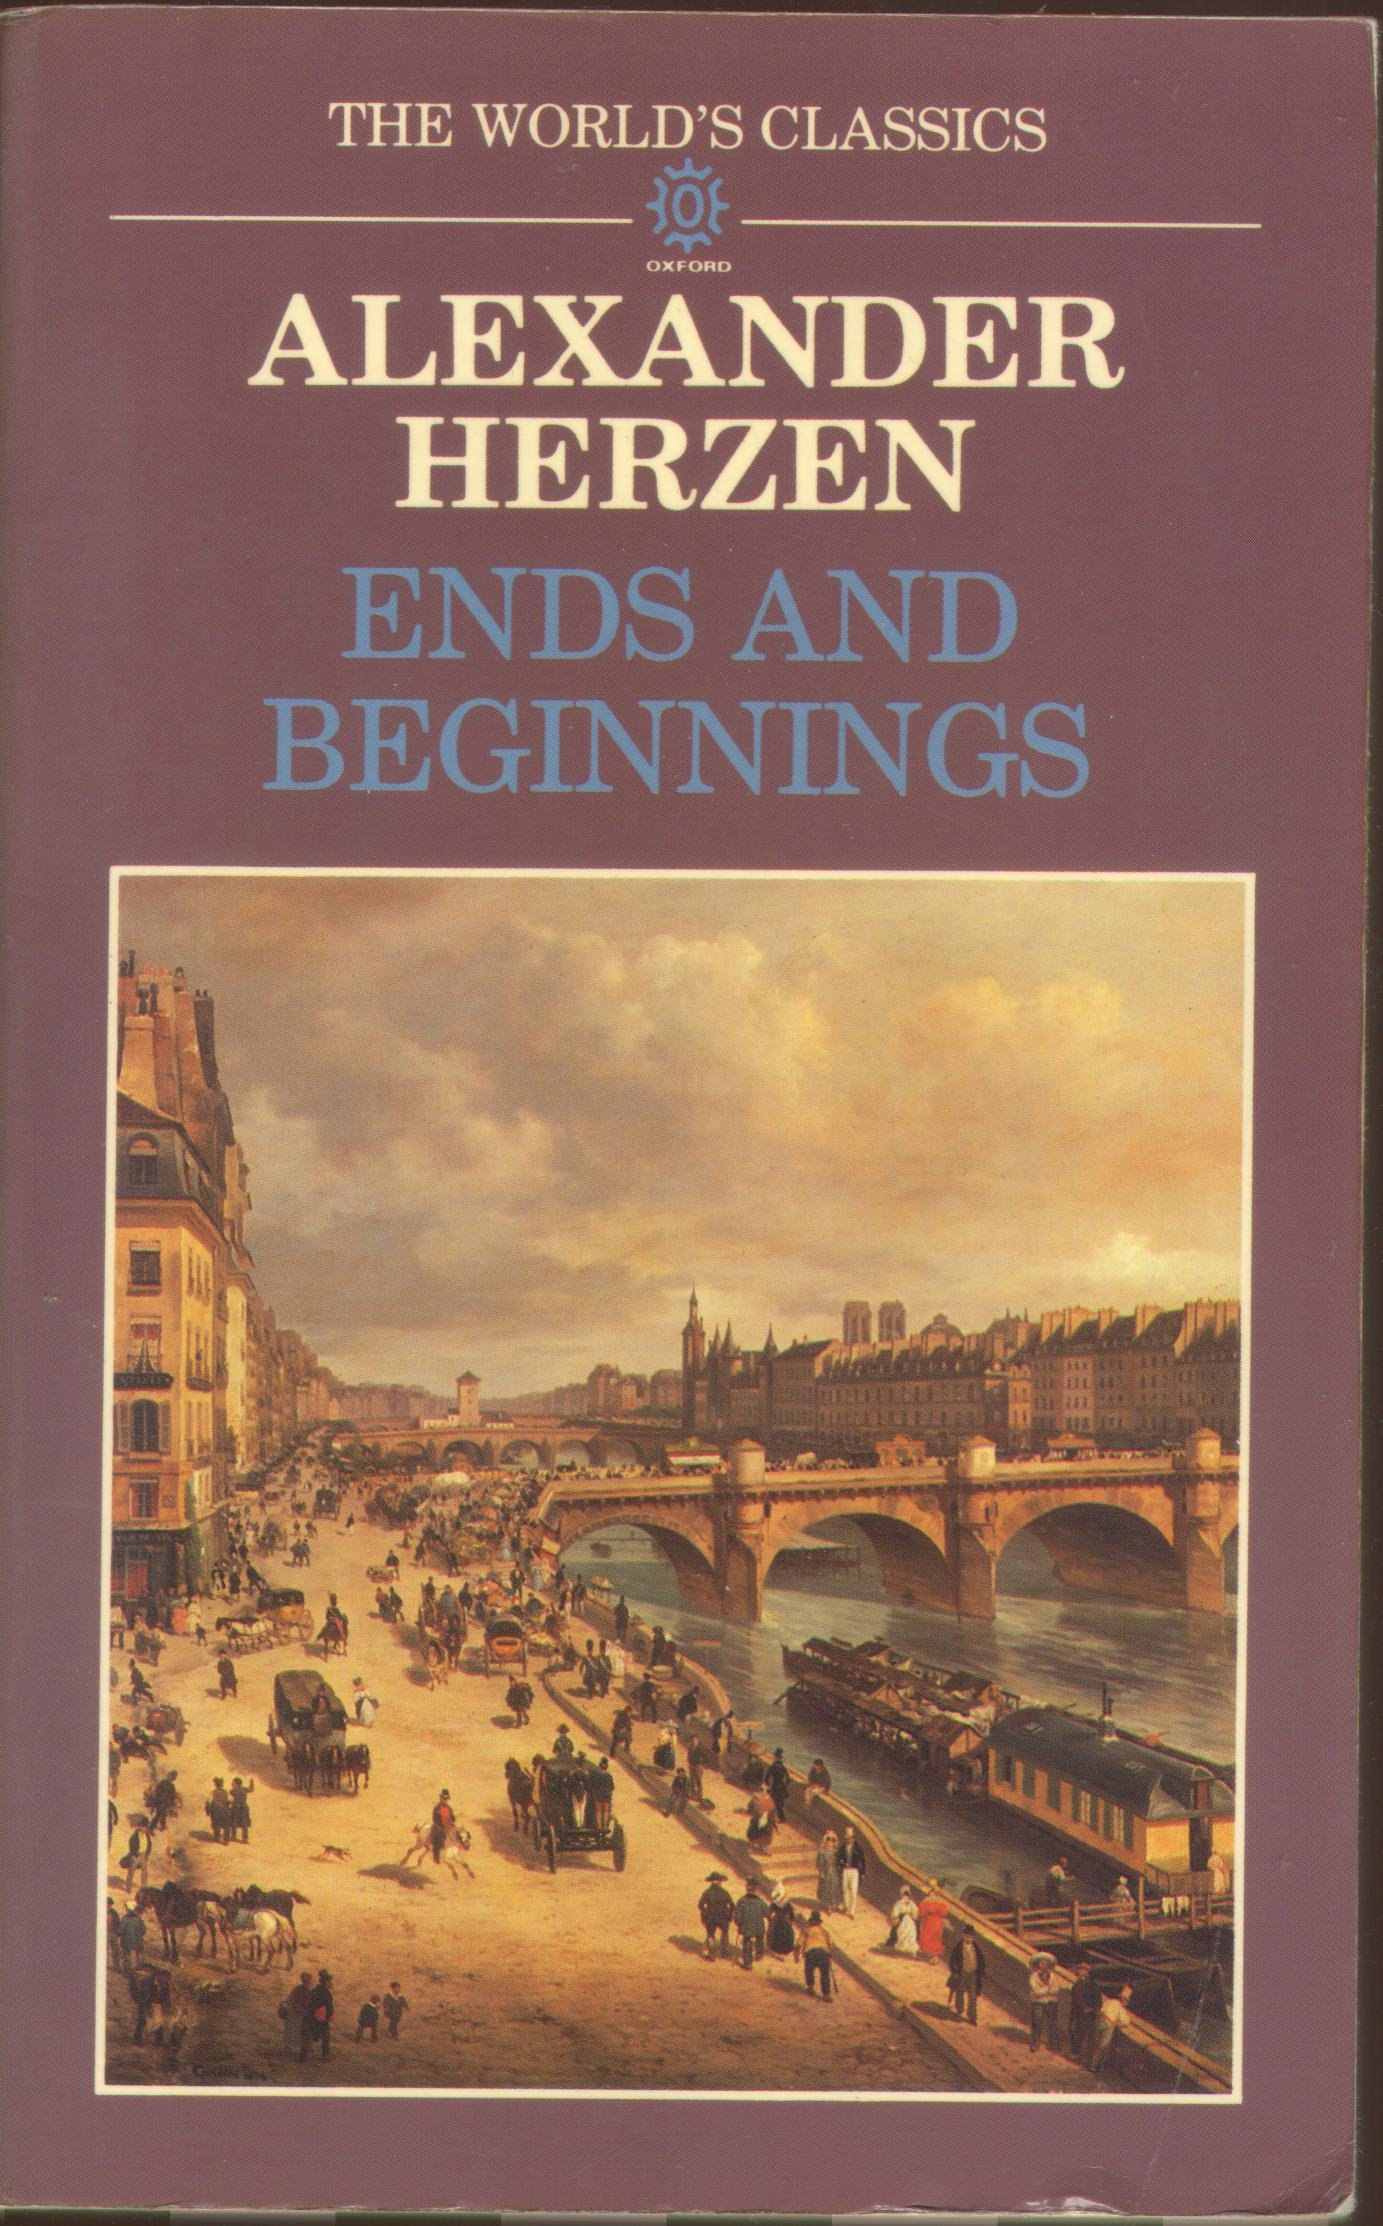 Memoir chronicle of Alexander Herzen Past and Thoughts: a brief summary 48